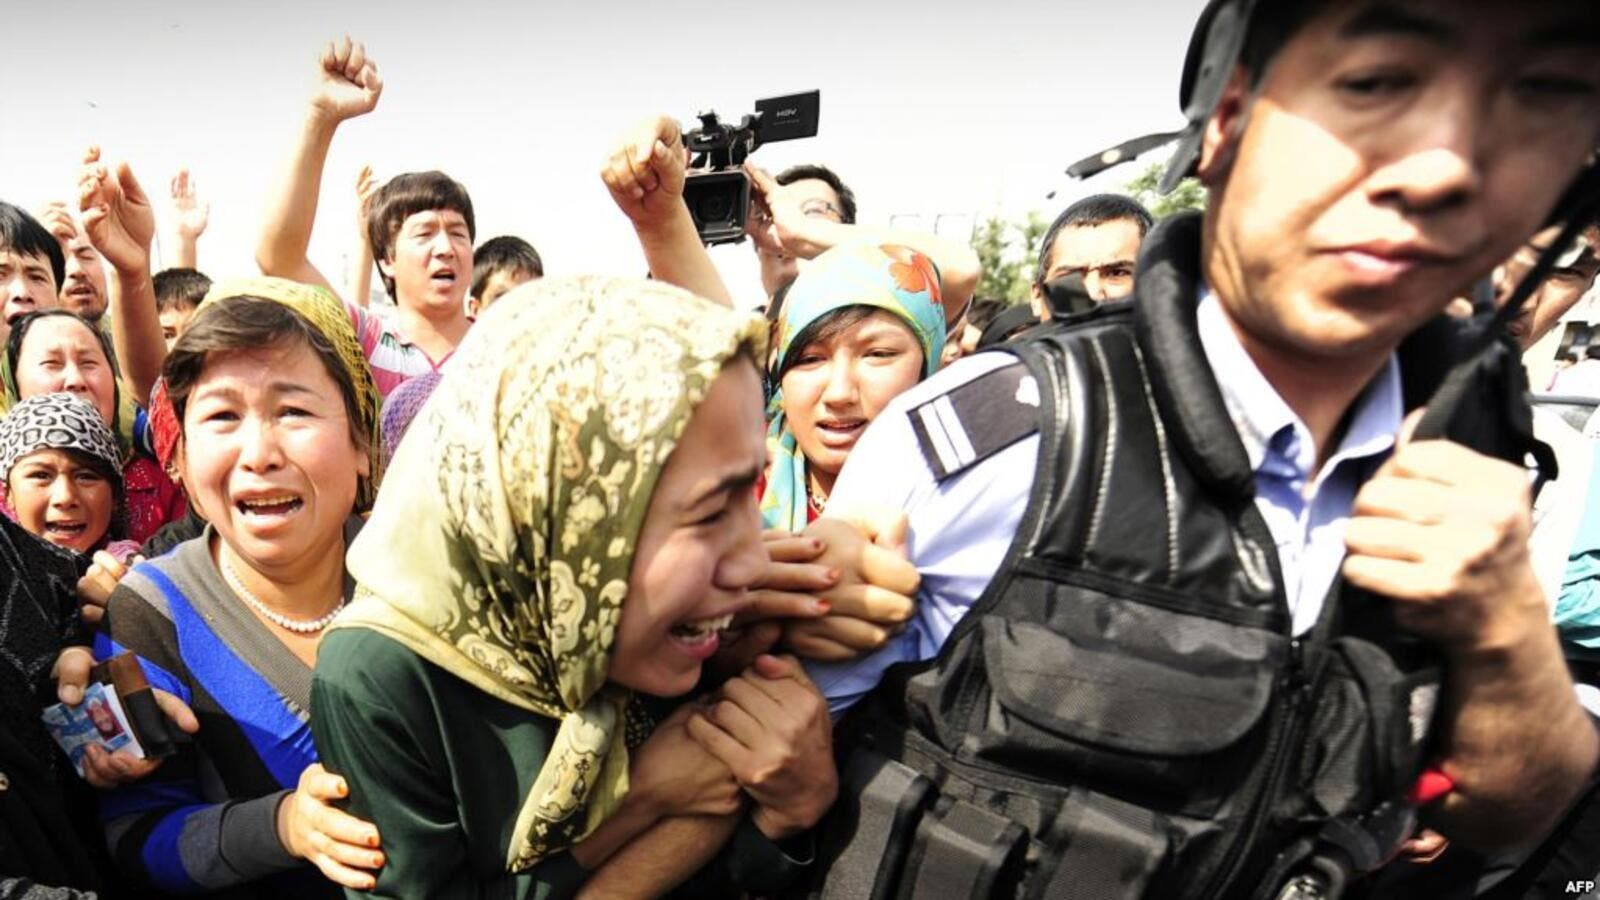 Uyghurs, or the Muslims in China have been facing mass detentions by the Chinese government where they are being put under pressure to denounce their religion. (AFP/File Photo)